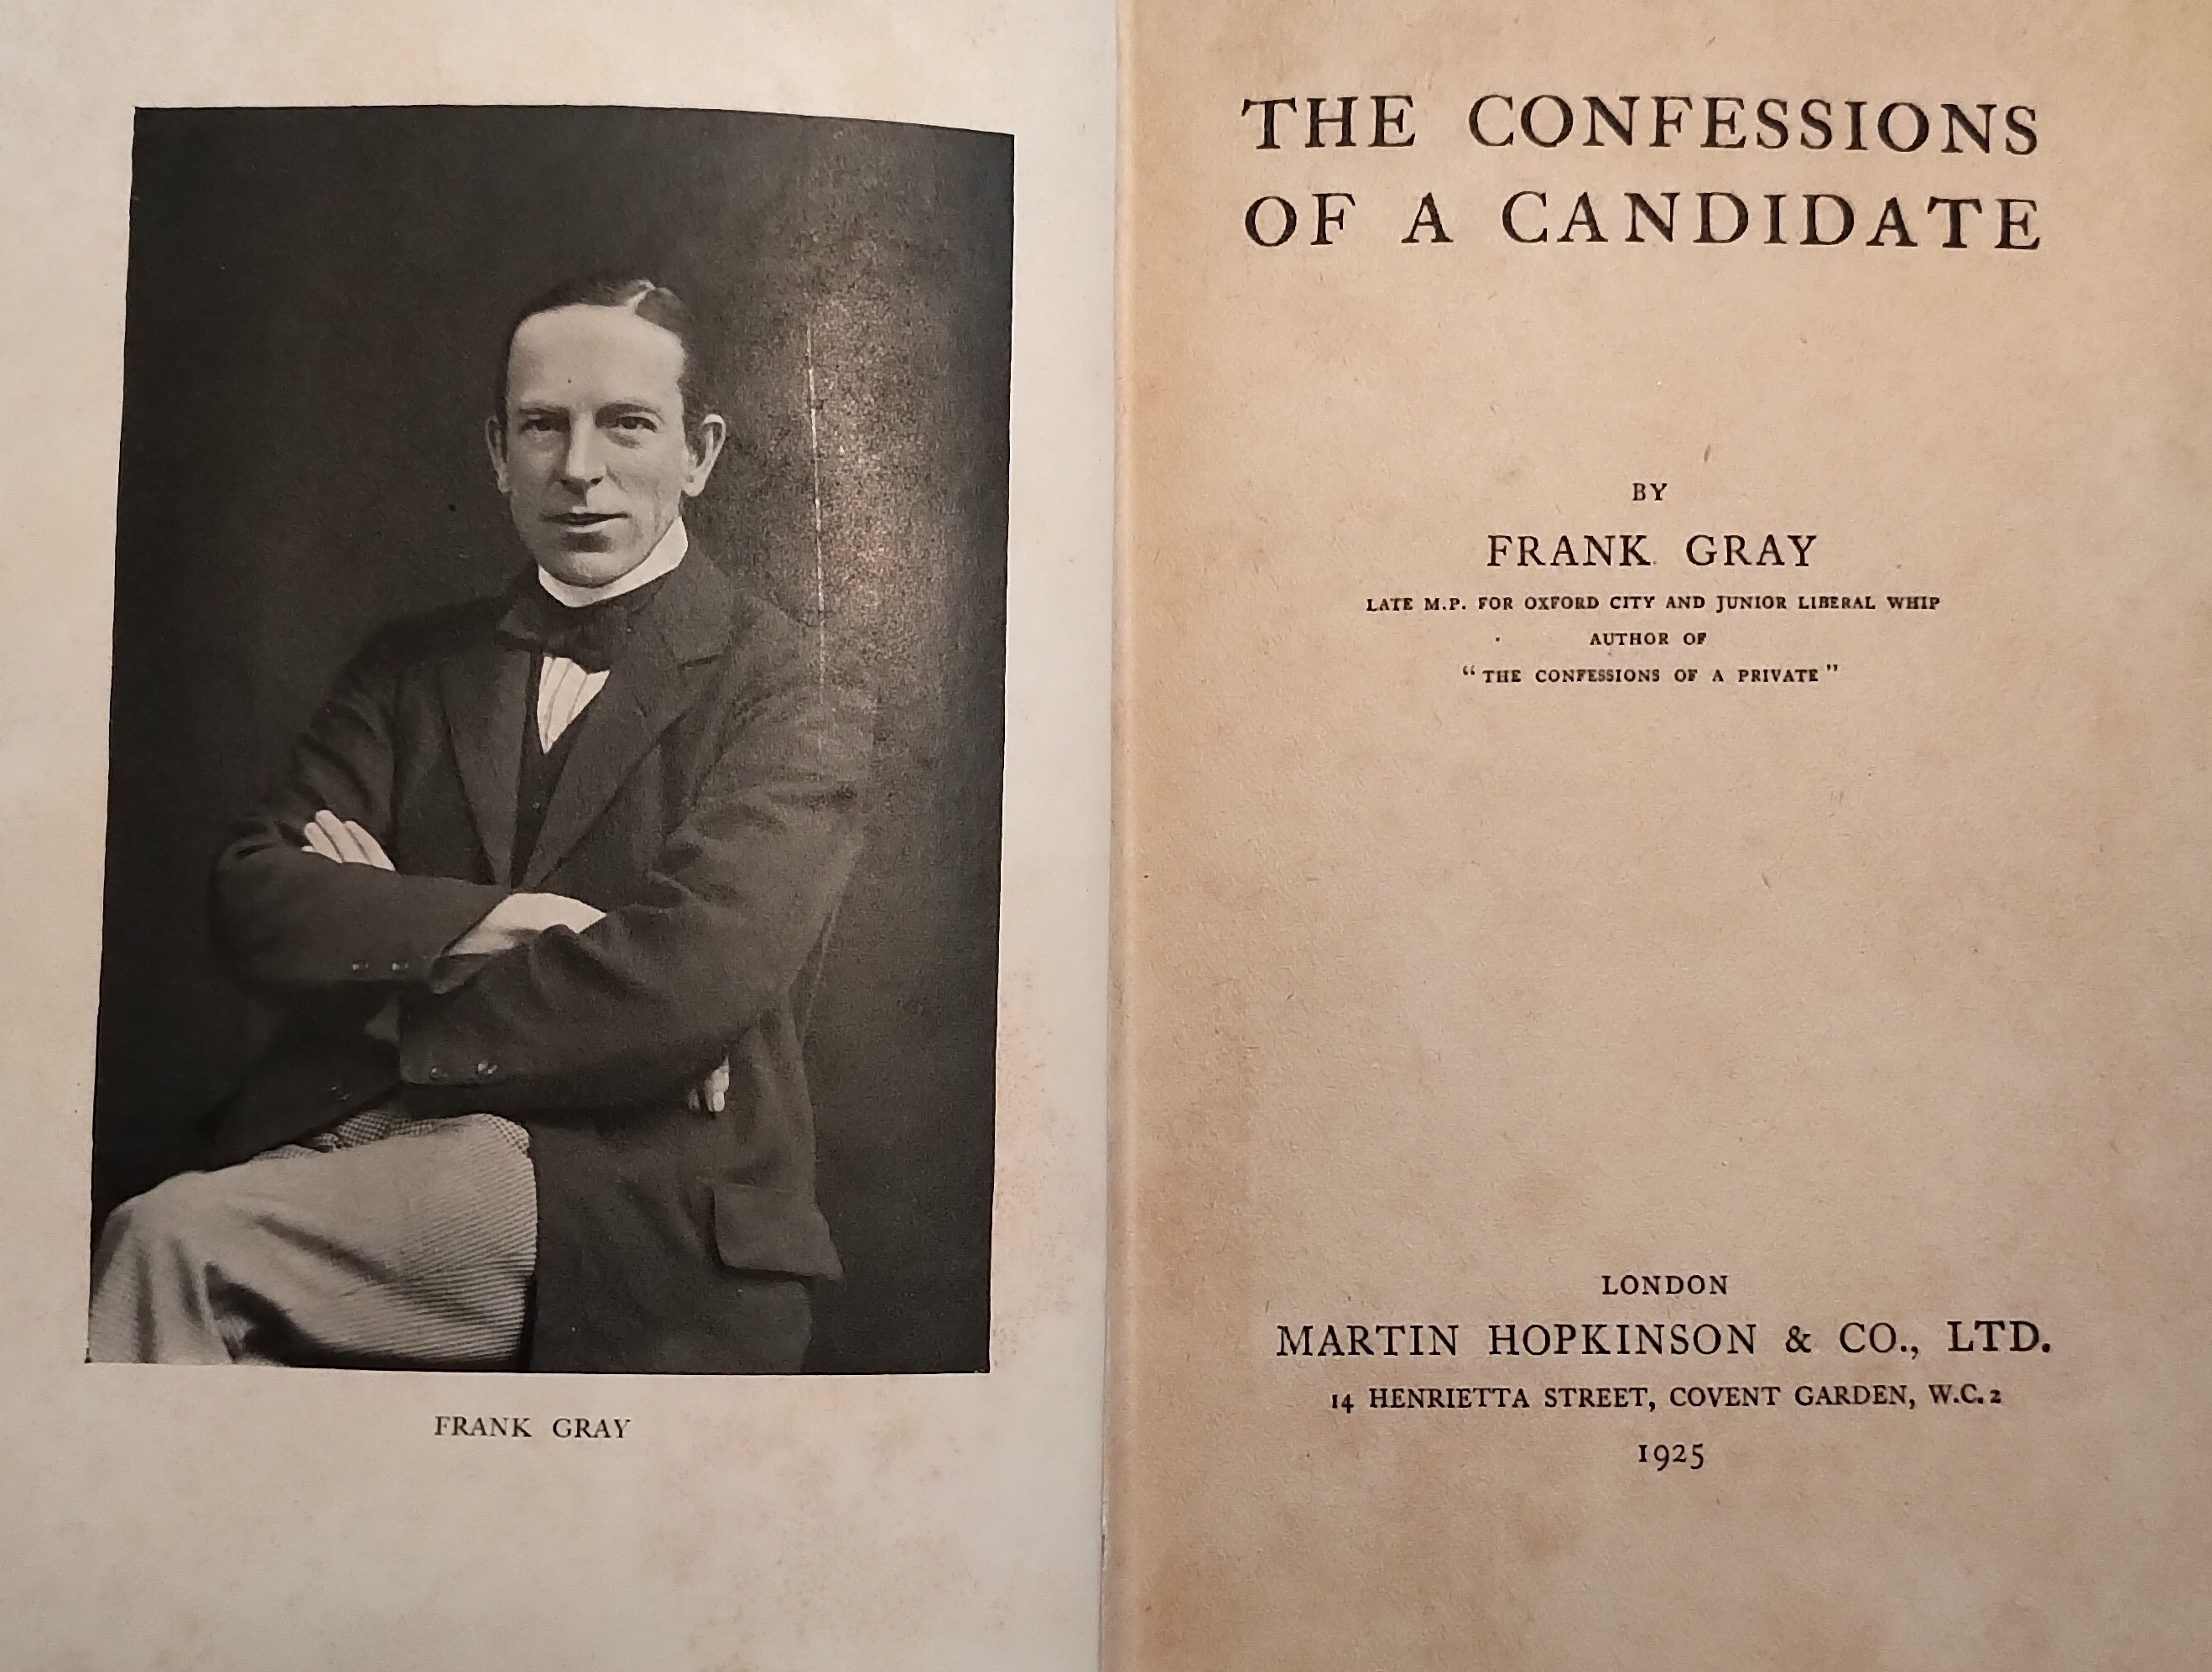 Frank Gray - The Confessions of a Candidate - cover pages